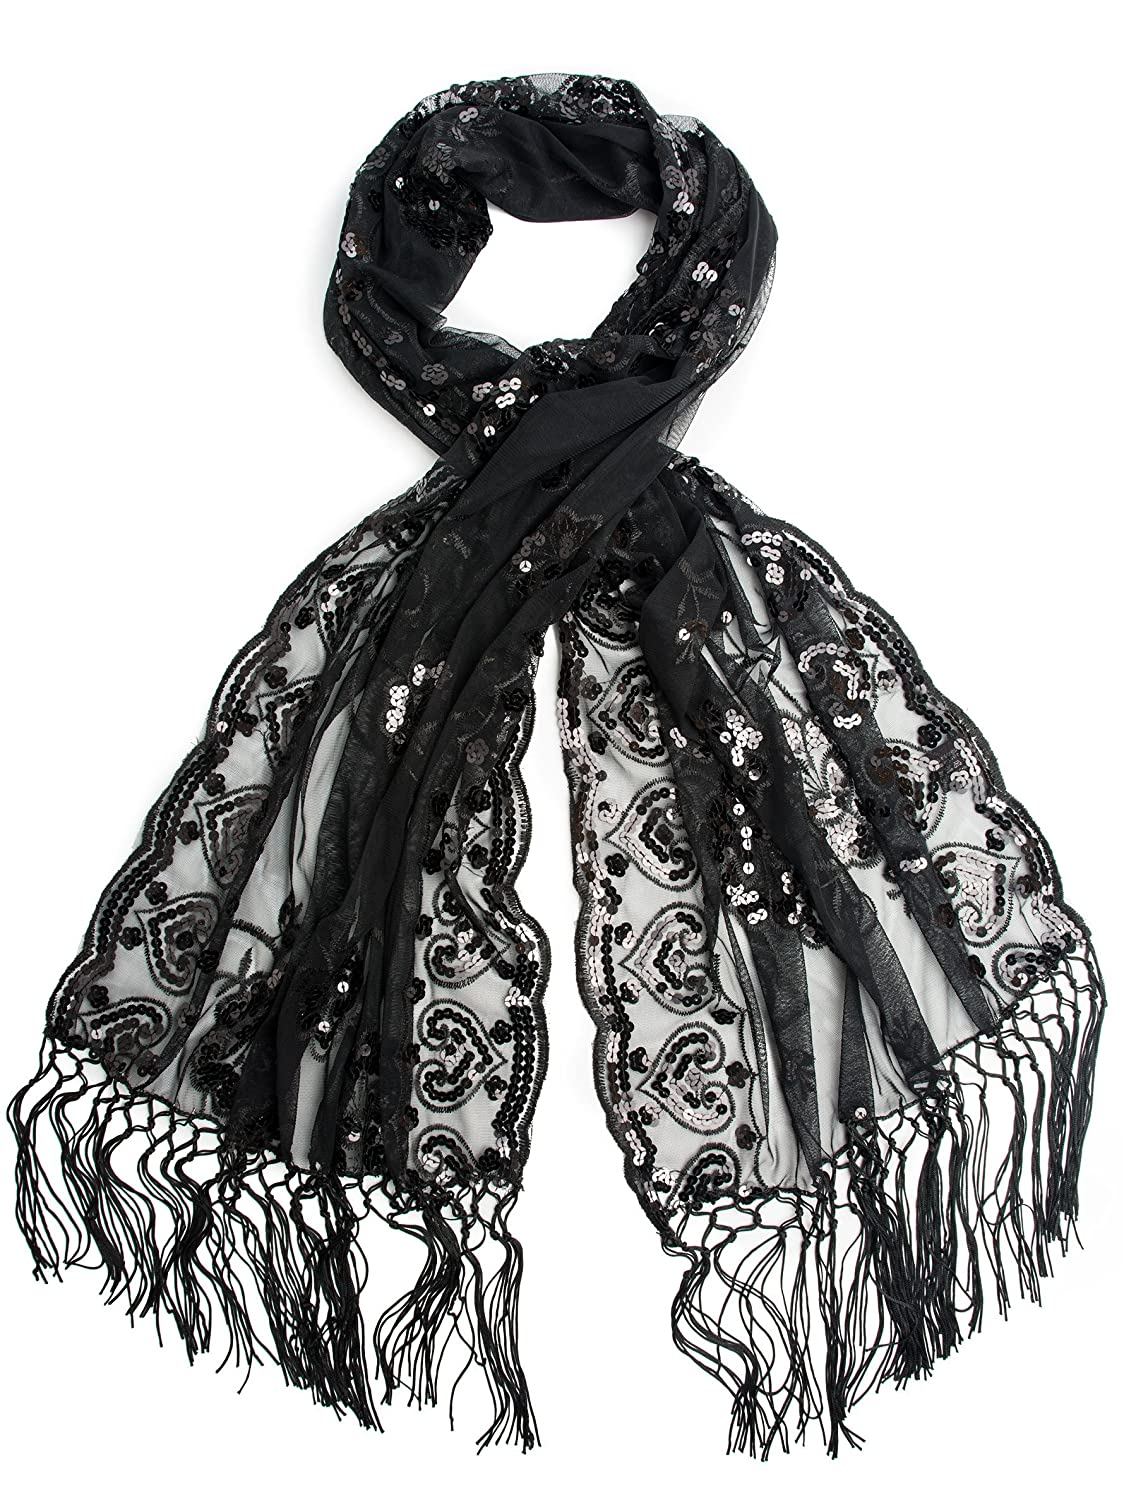 Vintage Inspired Scarves for Winter Black Madison Shawl Long Fringe Sequin Evening Wrap $14.95 AT vintagedancer.com